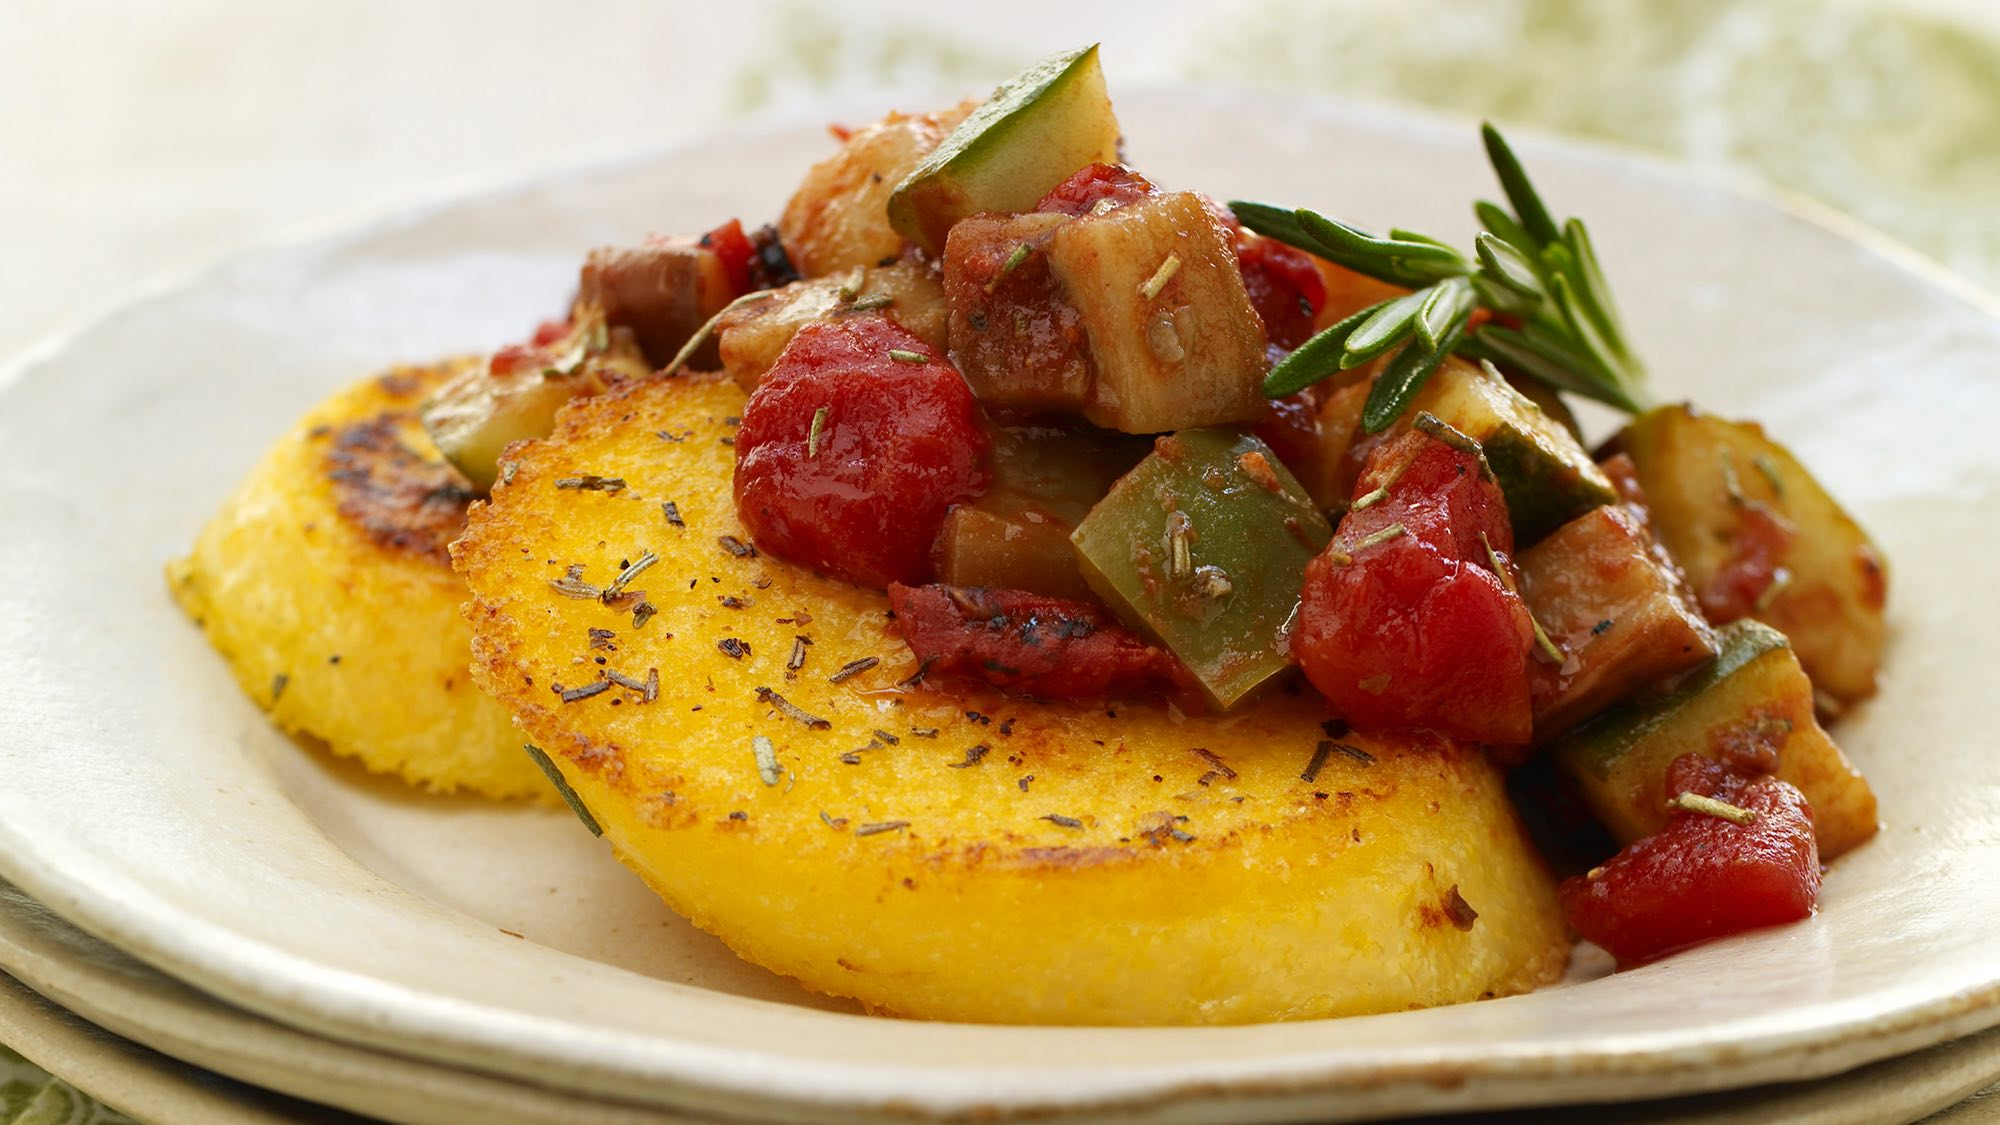 garden-ratatouille-with-crispy-rosemary-polenta.jpg